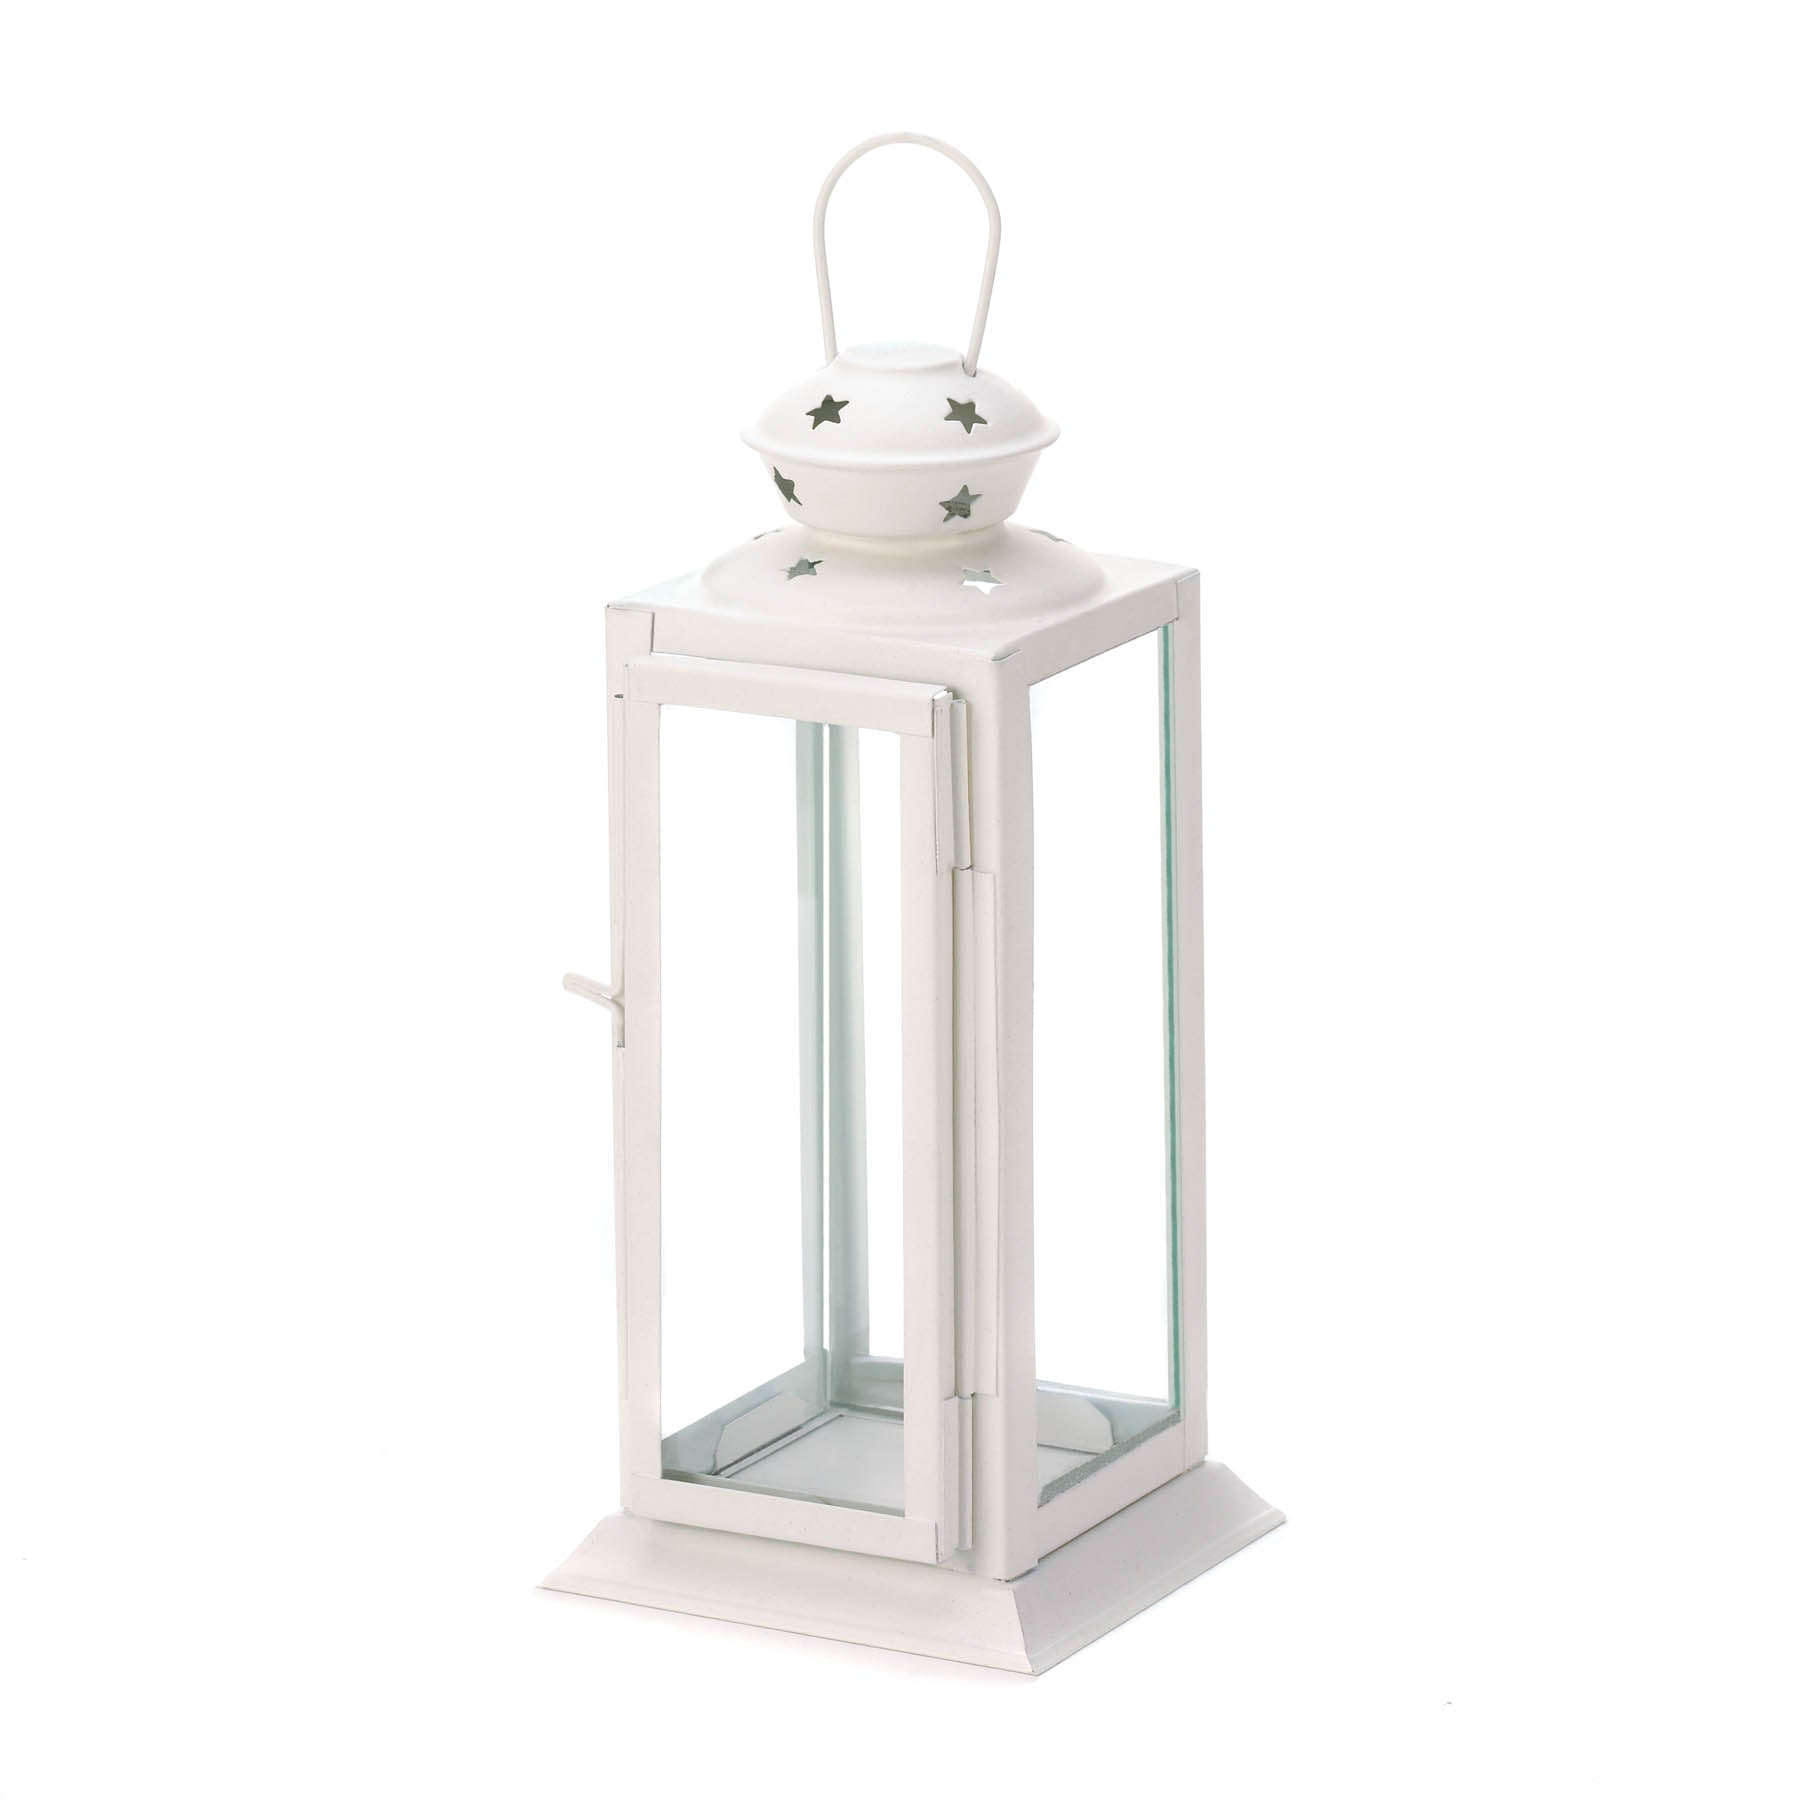 Gallery of Light Starlight White Candle Lantern - 10015419